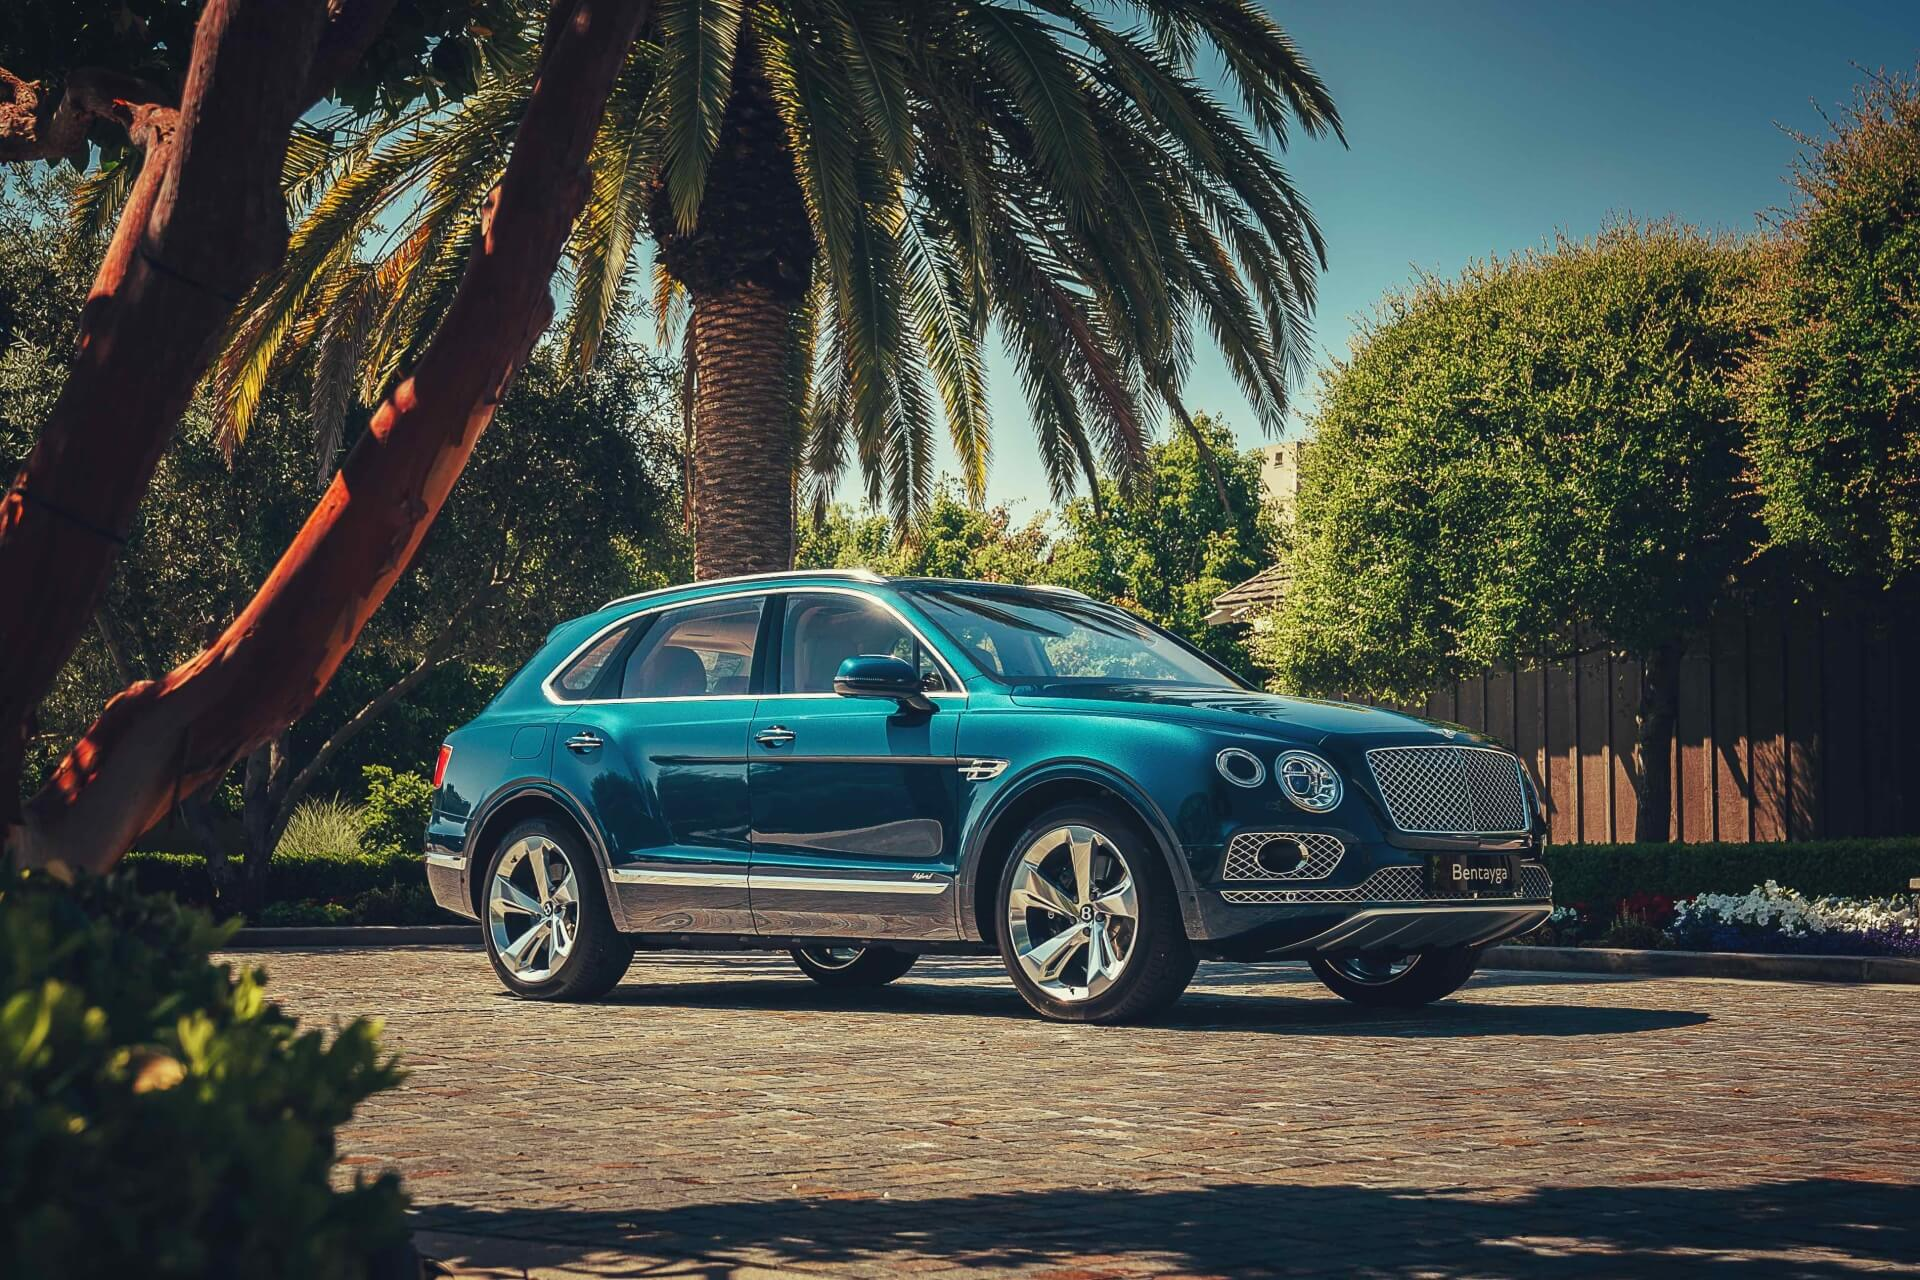 """Bentley launches Bentayga Hybrid, """"the world's first true electrified luxury car"""""""